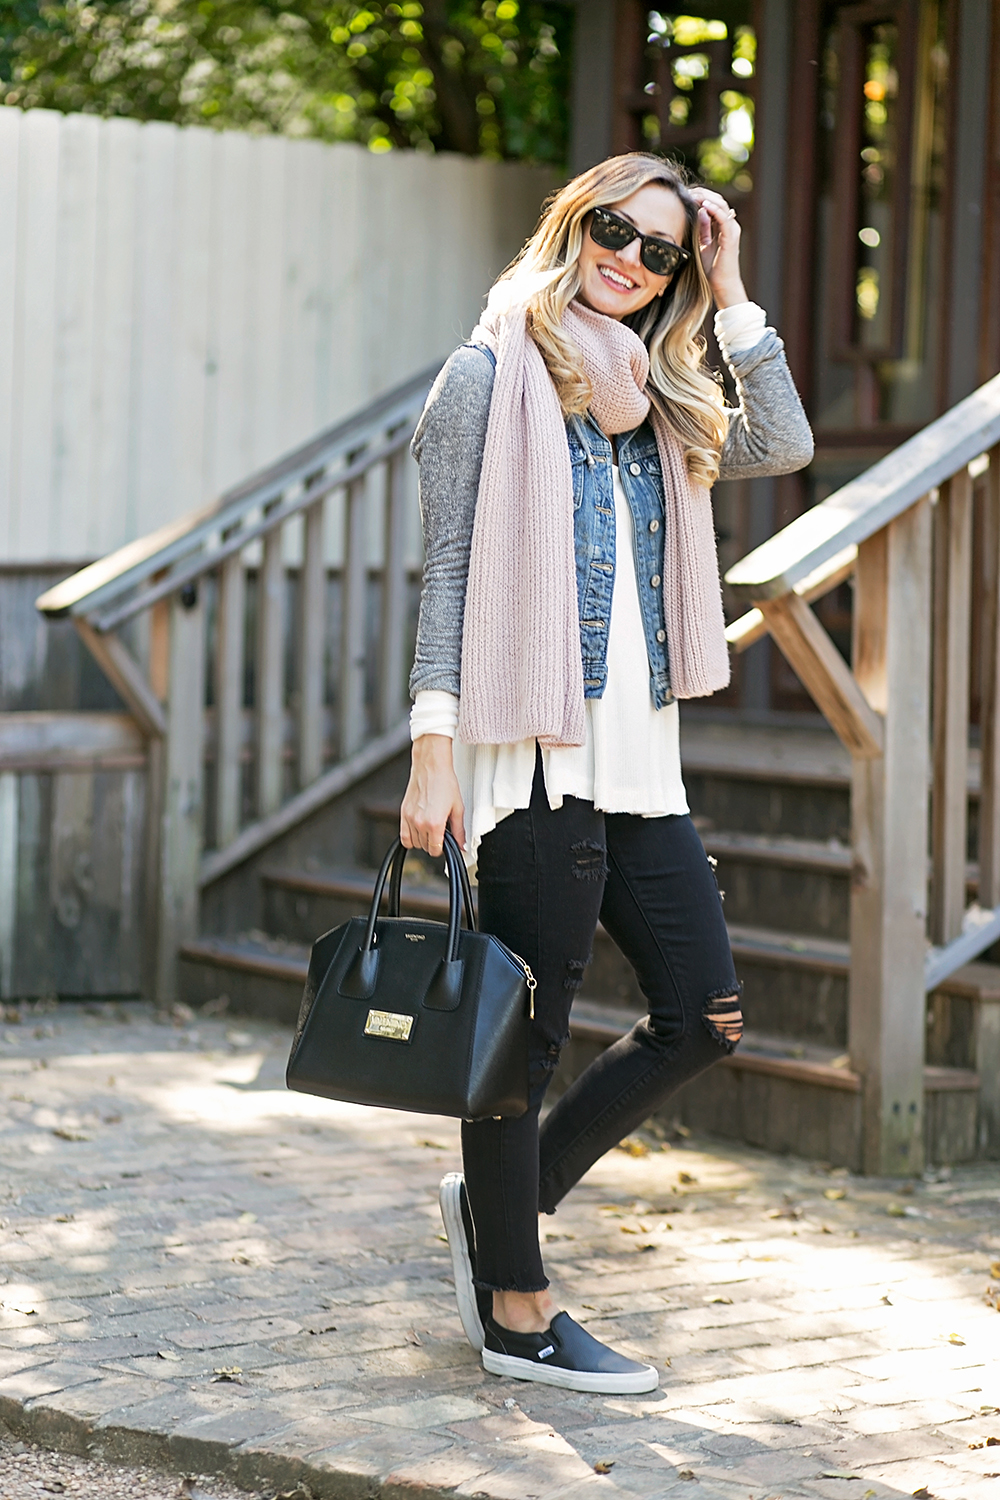 livvyland-blog-olivia-watson-austin-texas-fashion-blogger-toms-coffee-roasters-silver-jeans-tuesday-skinny-jeans-vans-slip-on-black-sneakers-10